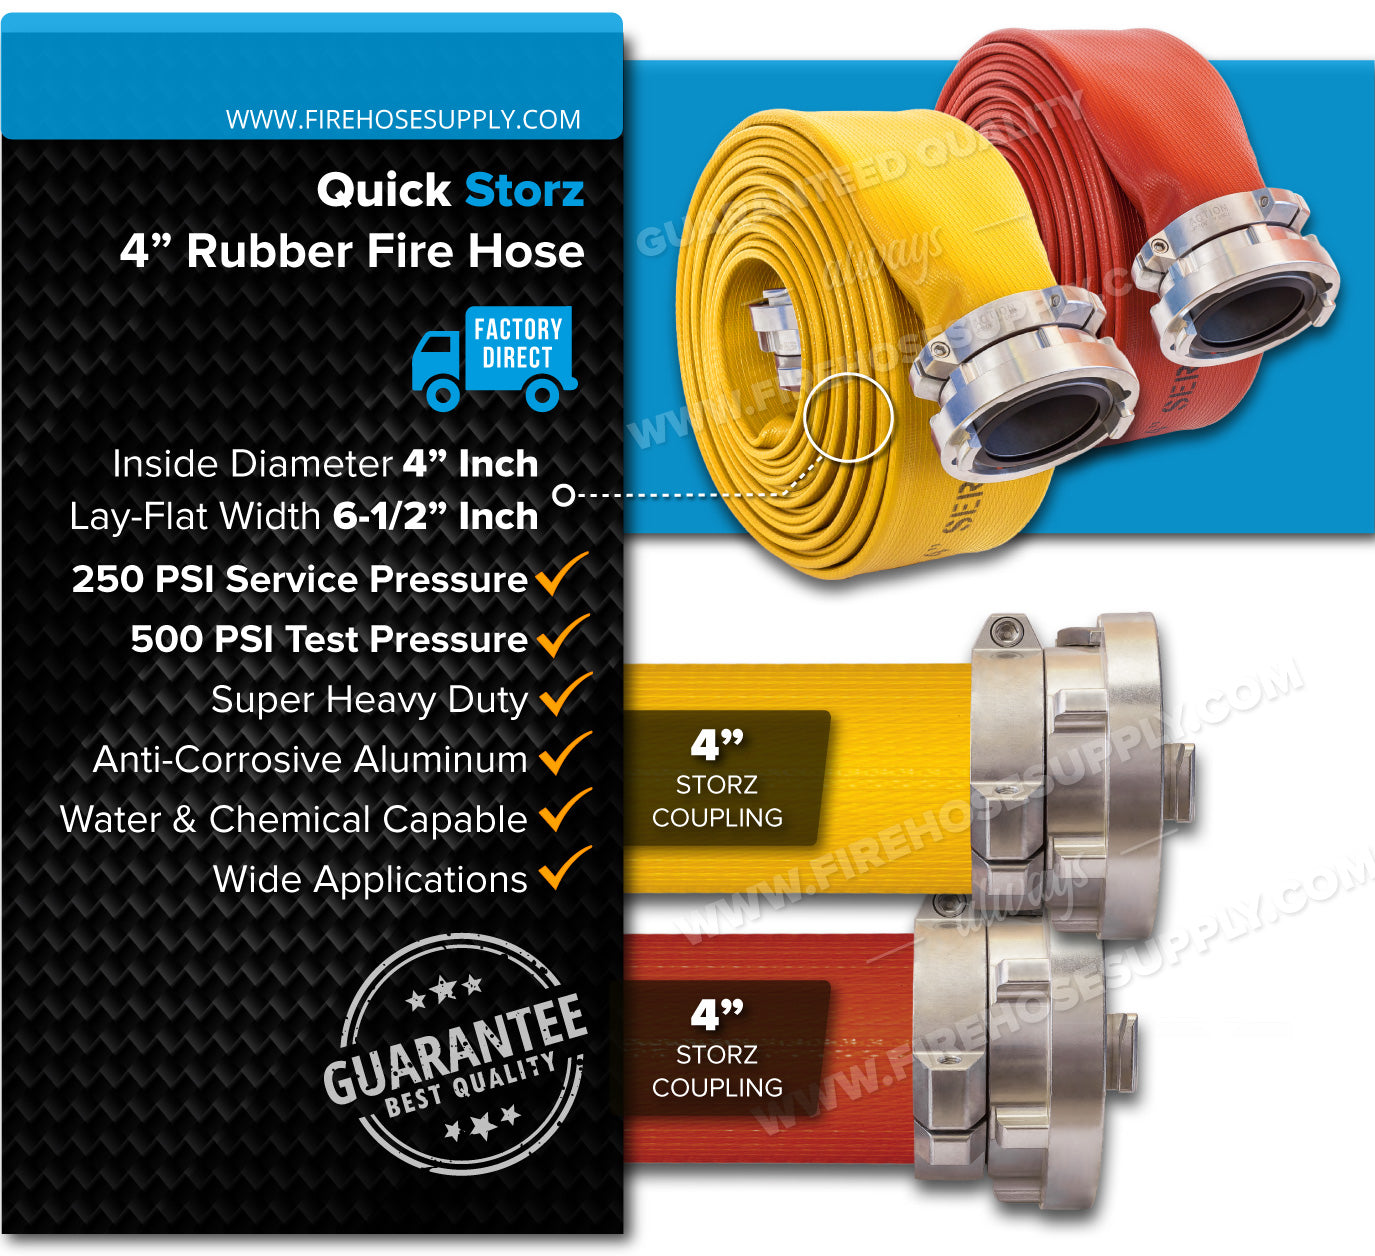 4 Inch Fire Hose Rubber Storz Yellow Red Overview